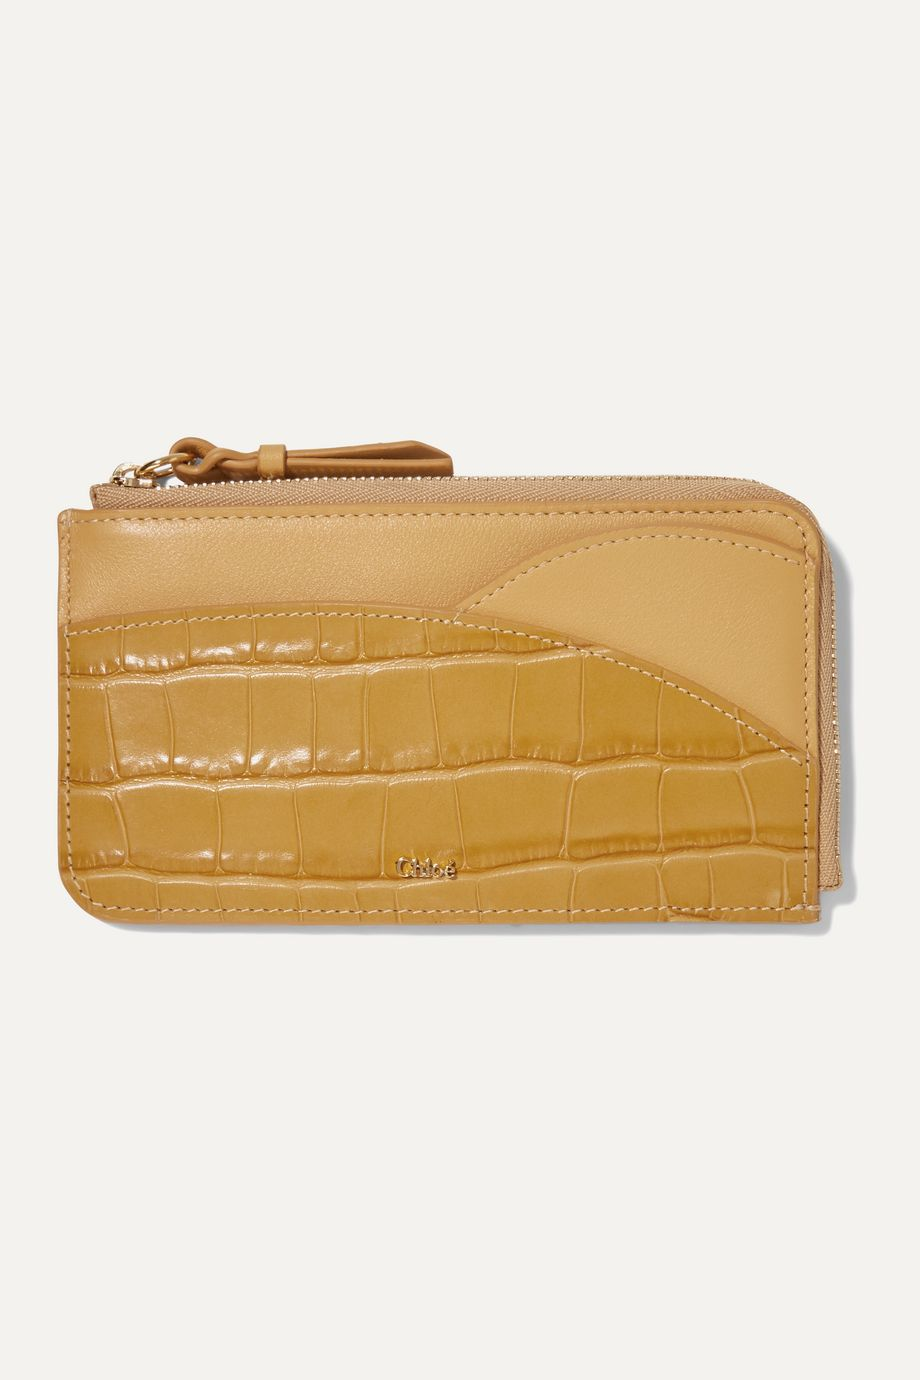 Chloé Walden smooth and glossed croc-effect leather cardholder